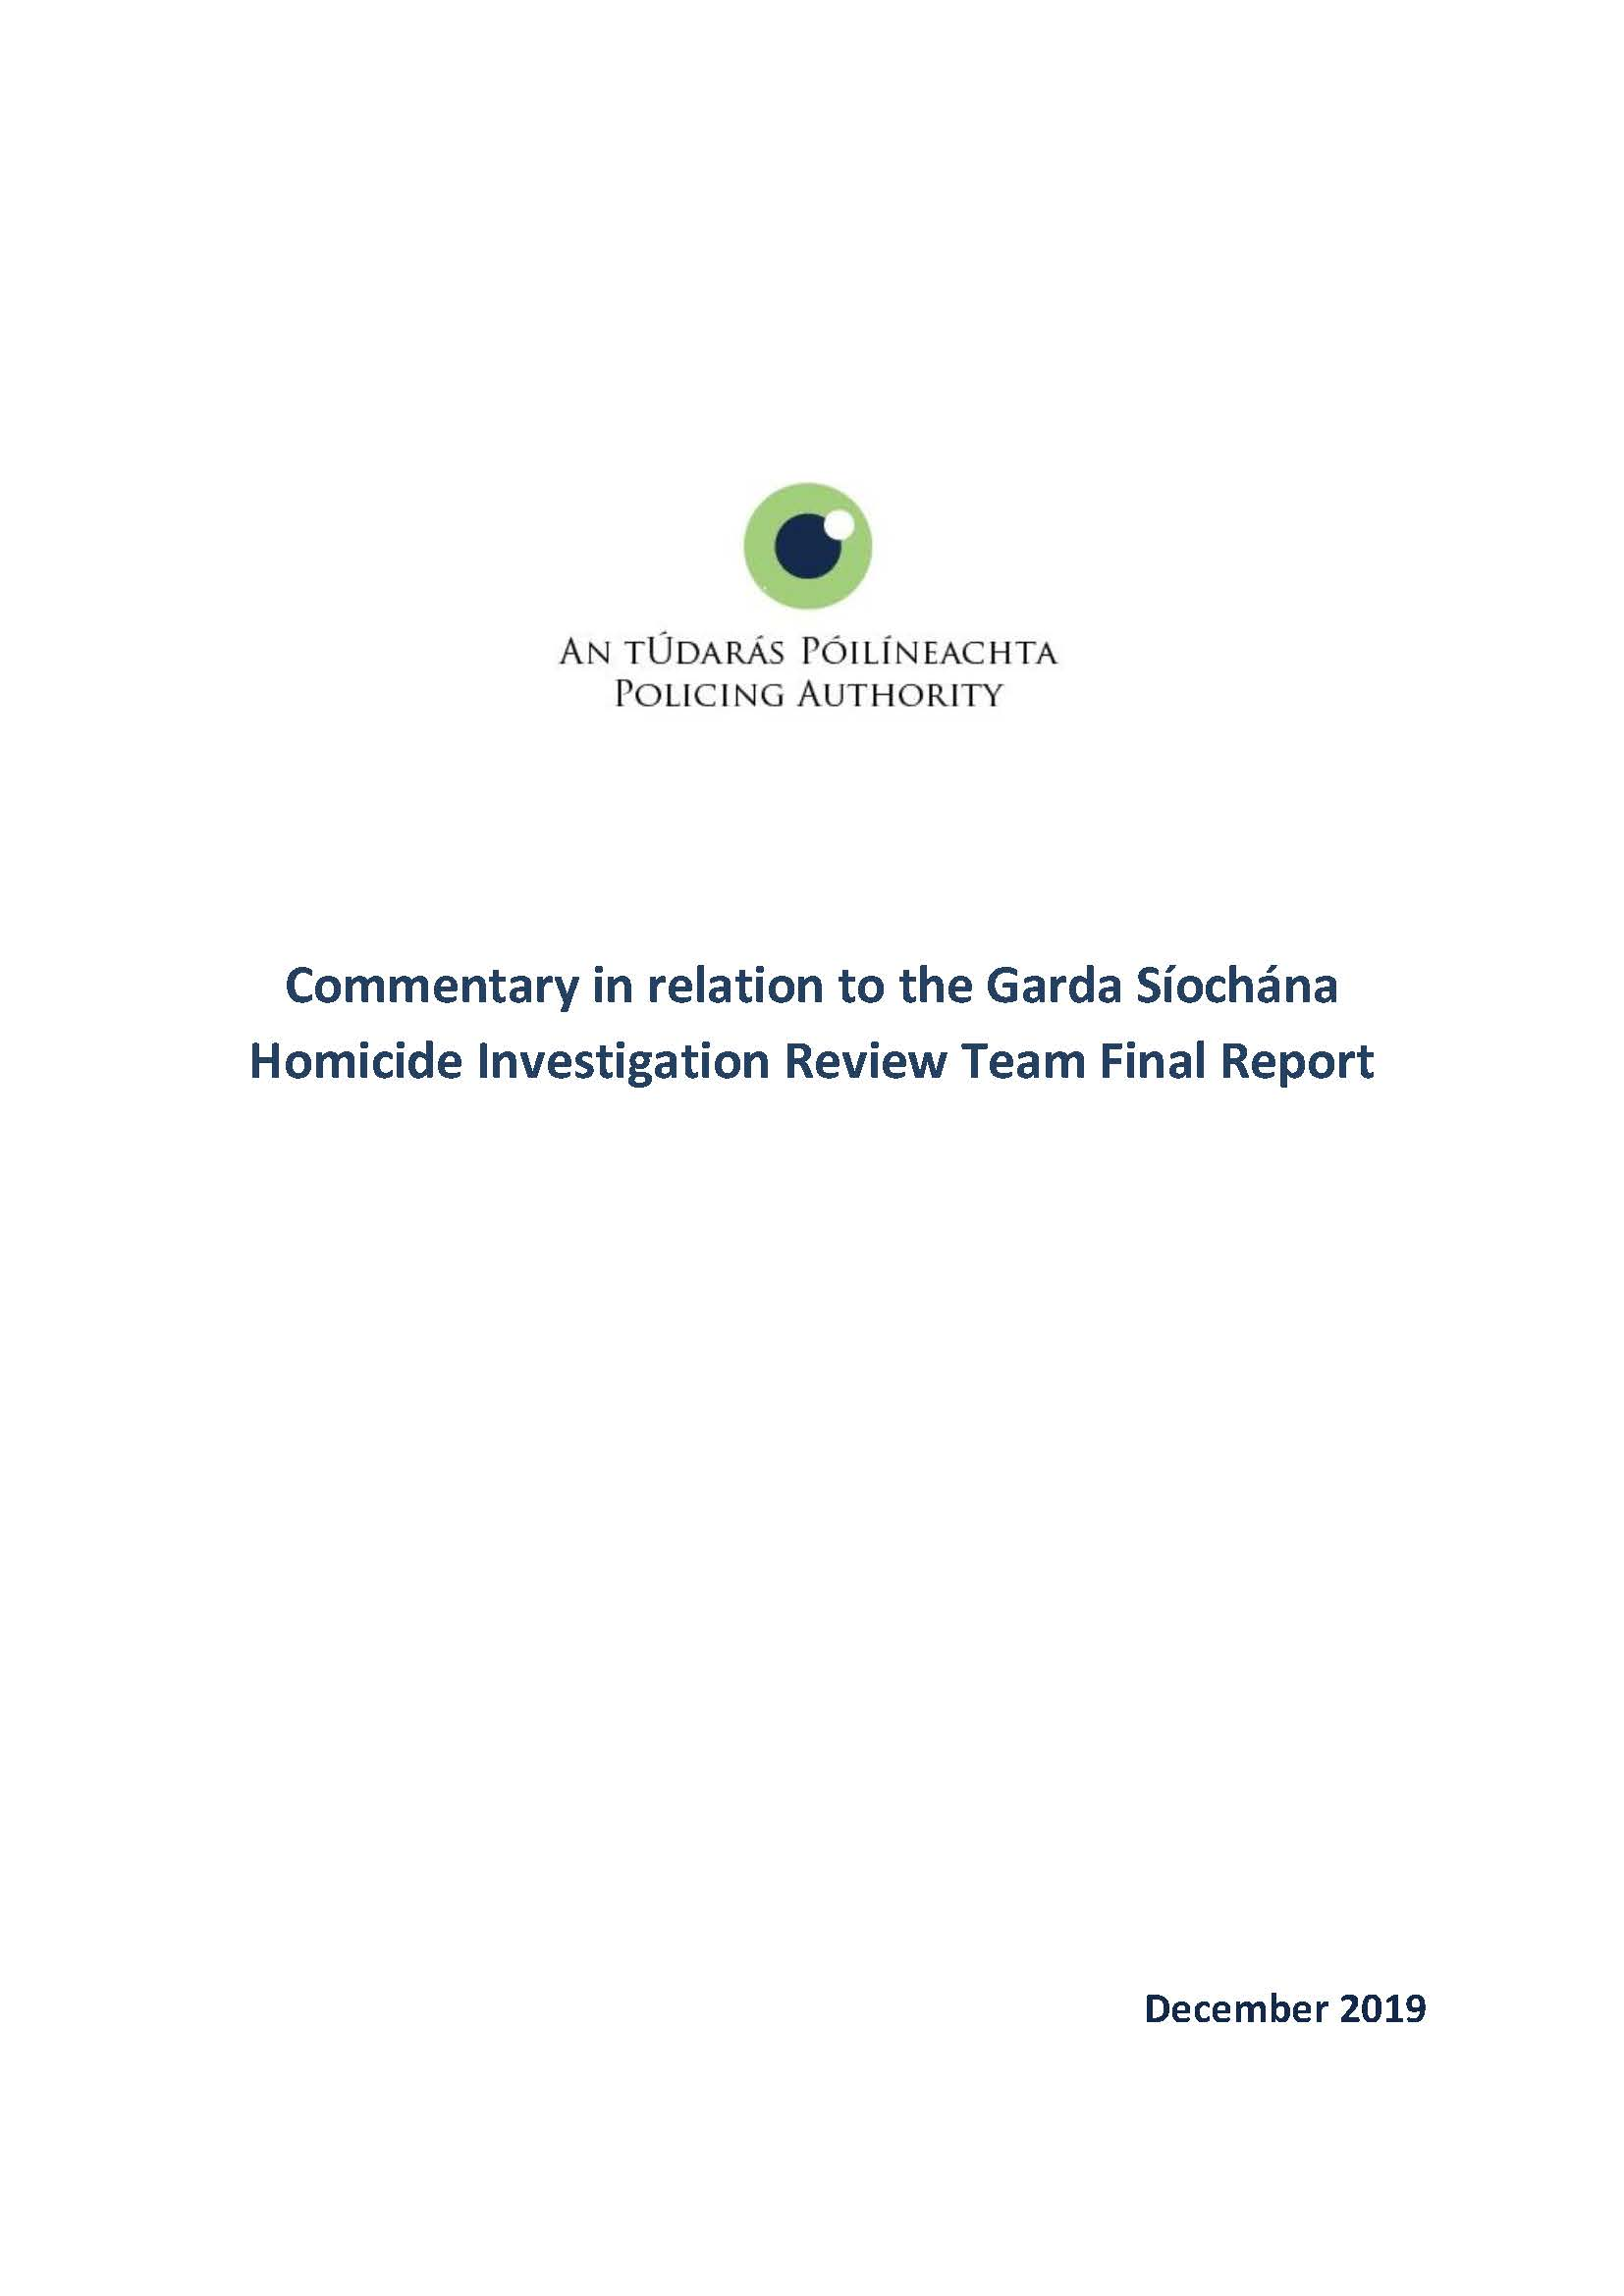 Commentary in relation to the Garda Siochana Homicide Investigation Review Team Final Report